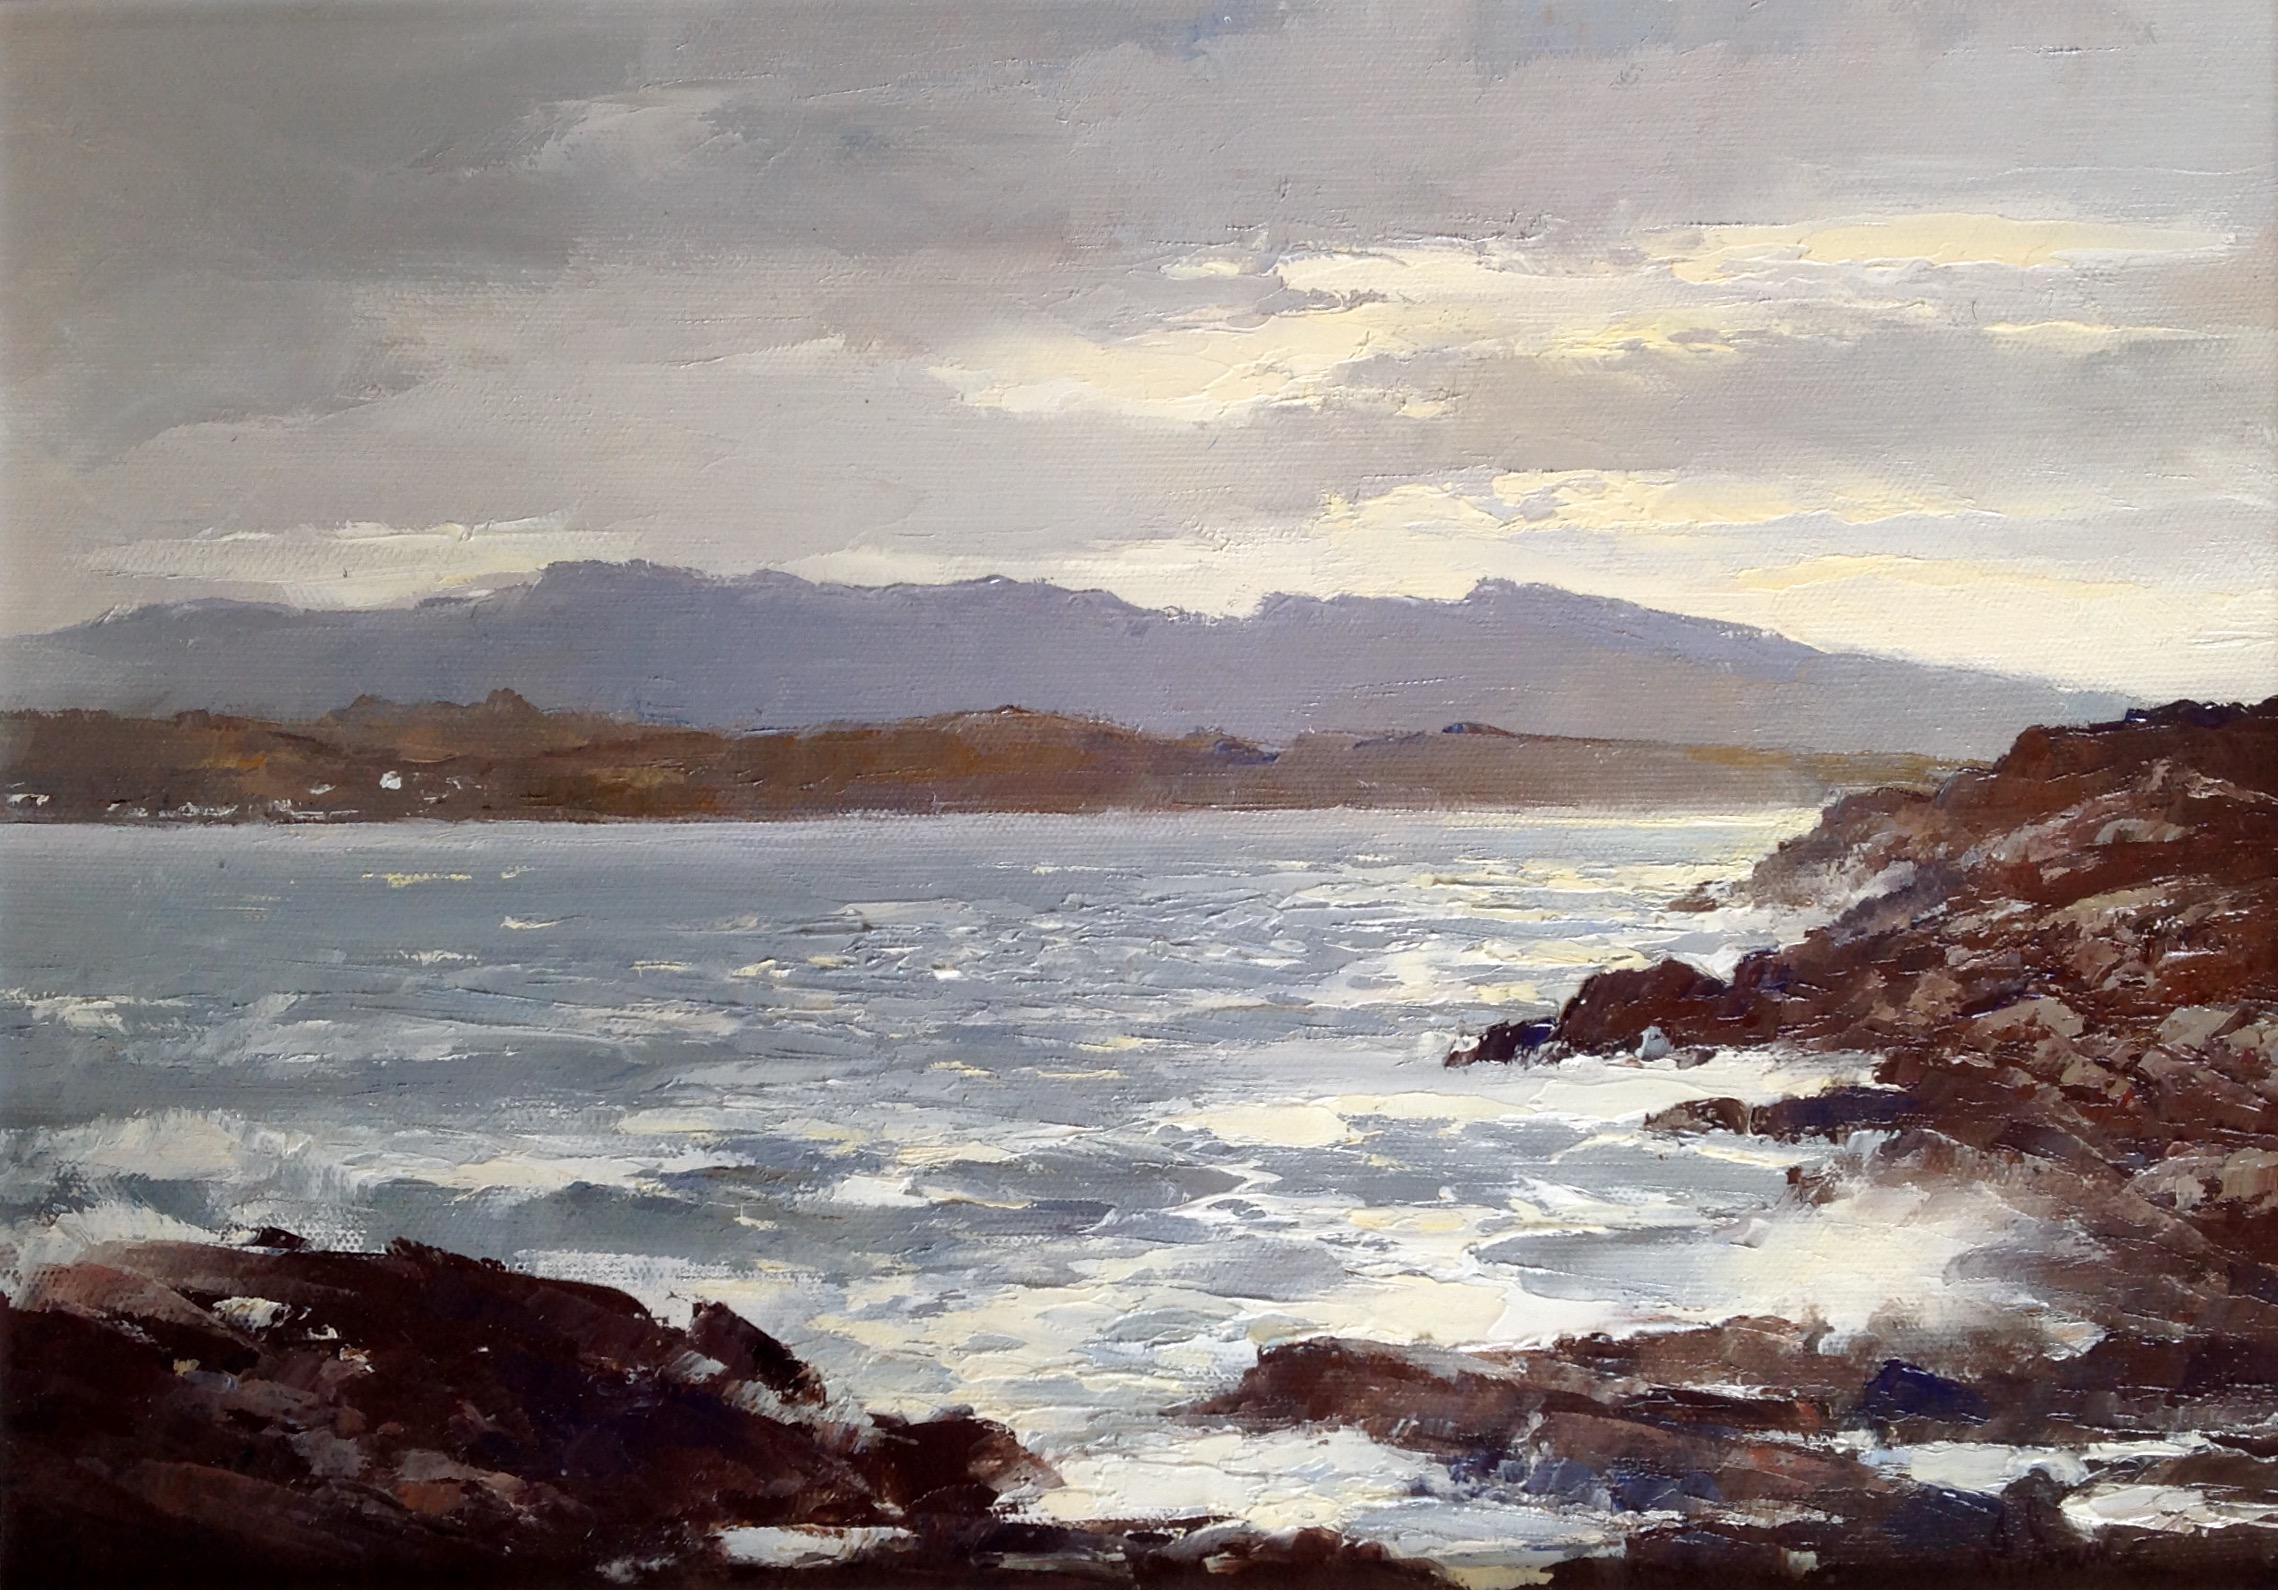 After the Storm, Sound of Sleat